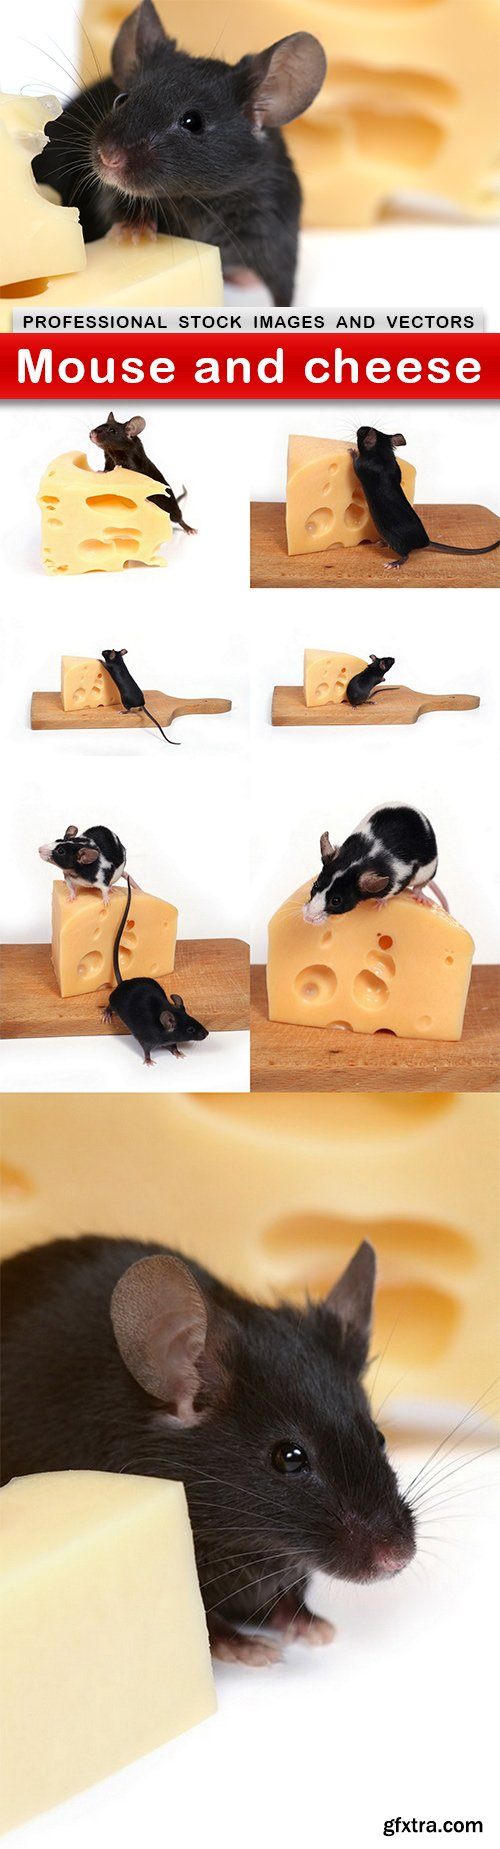 Mouse and cheese - 8 UHQ JPEG